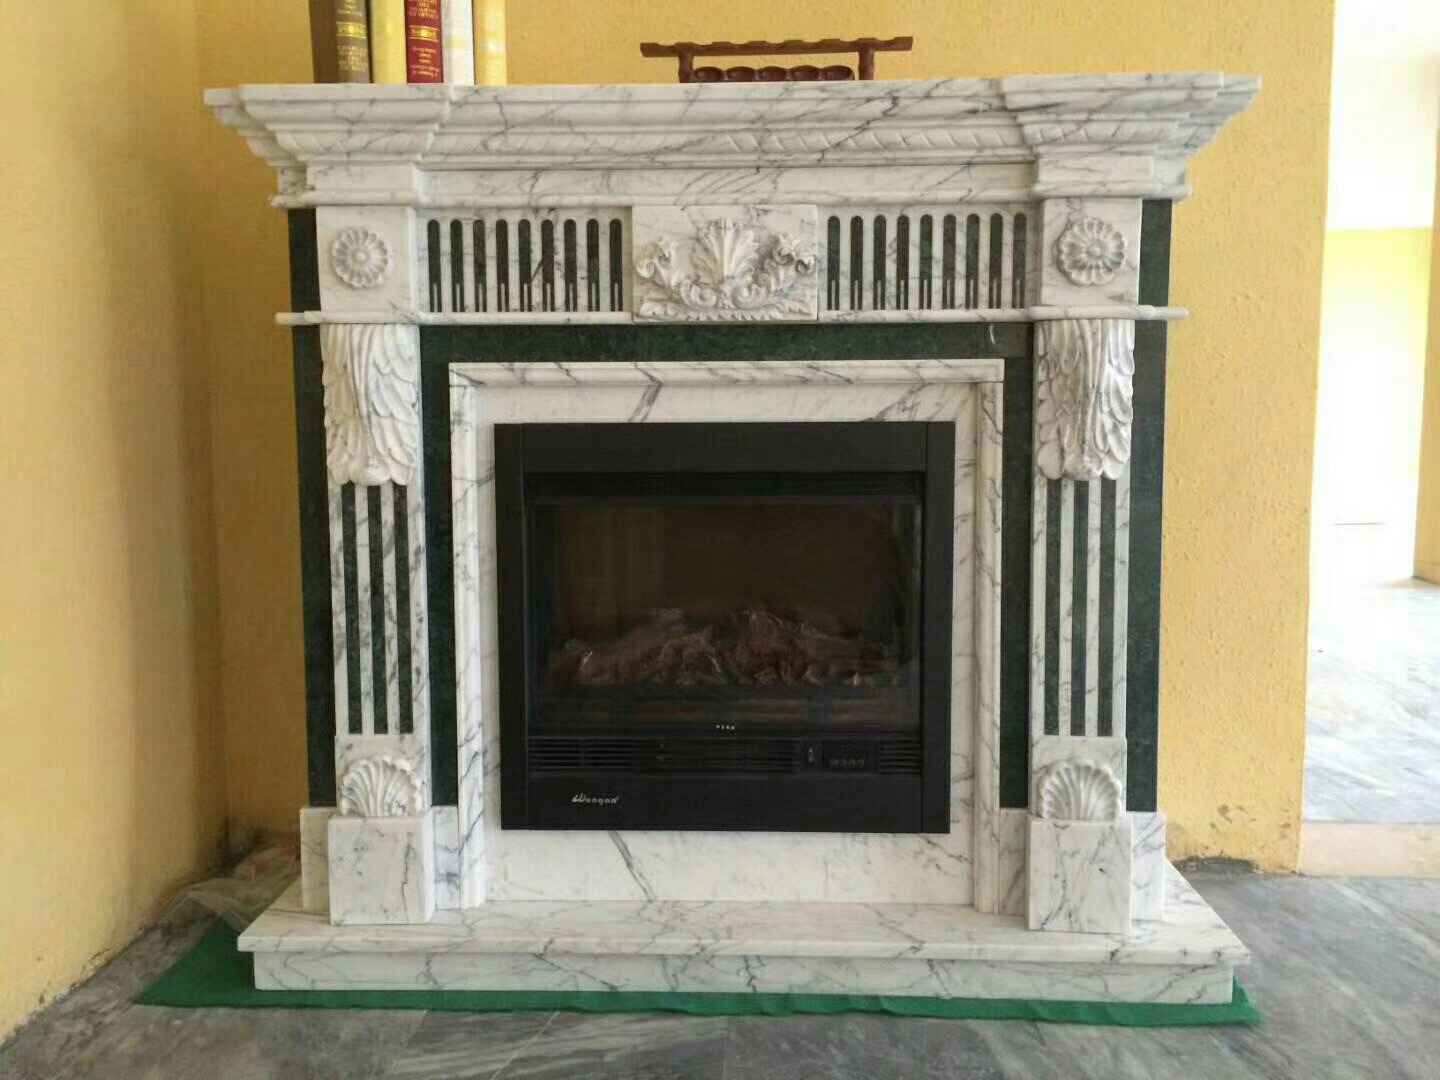 Wholesale Fireplace Inserts Stand Alone Fireplace Types Of Fireplaces Fireplaces Near Me Fire